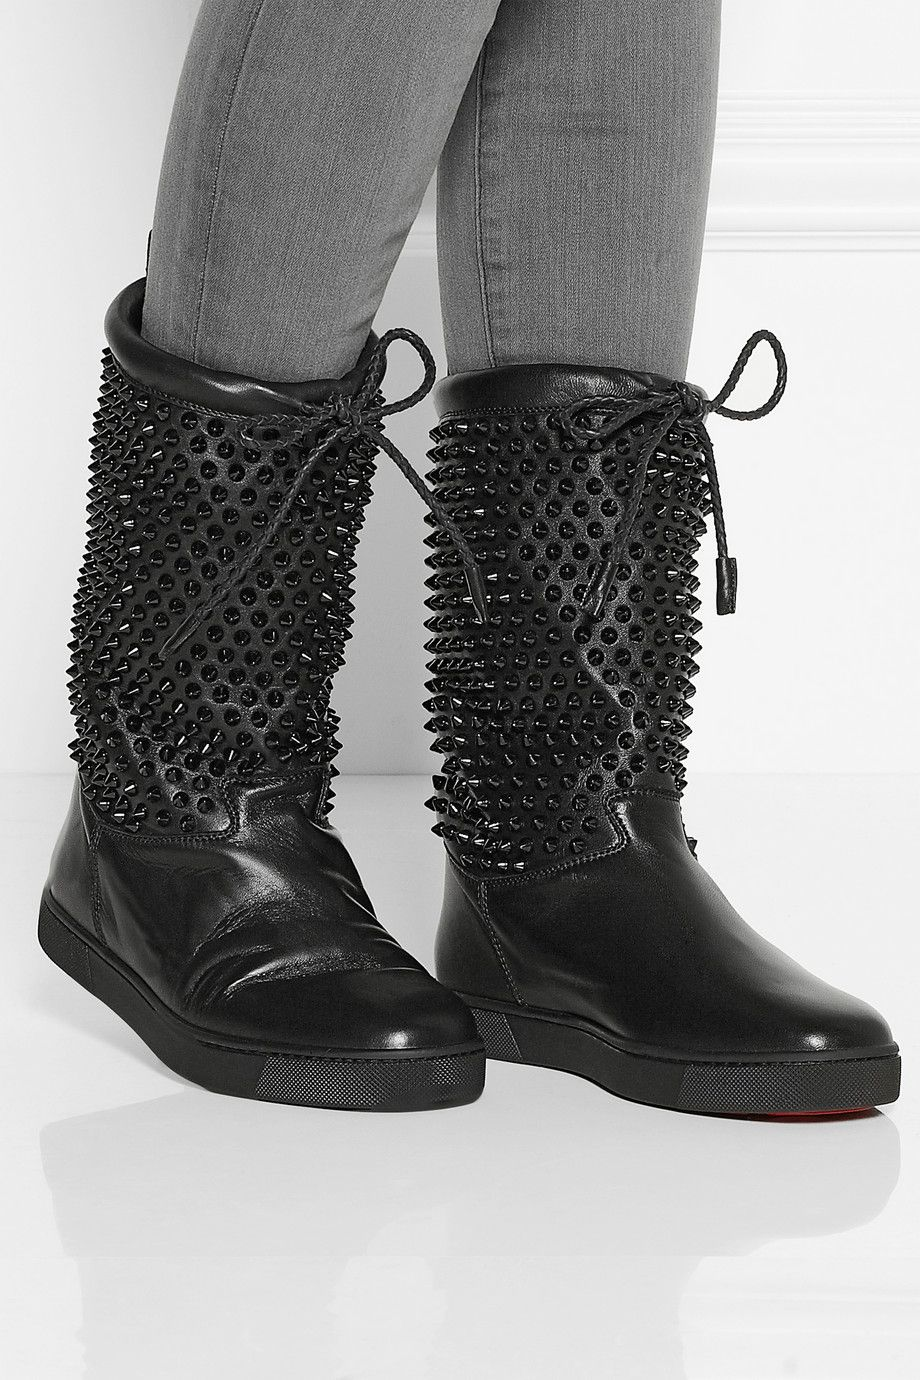 Christian Louboutin Surlapony Spiked Boots brand new unisex online cheap sale order cheap prices authentic uGdWLH7